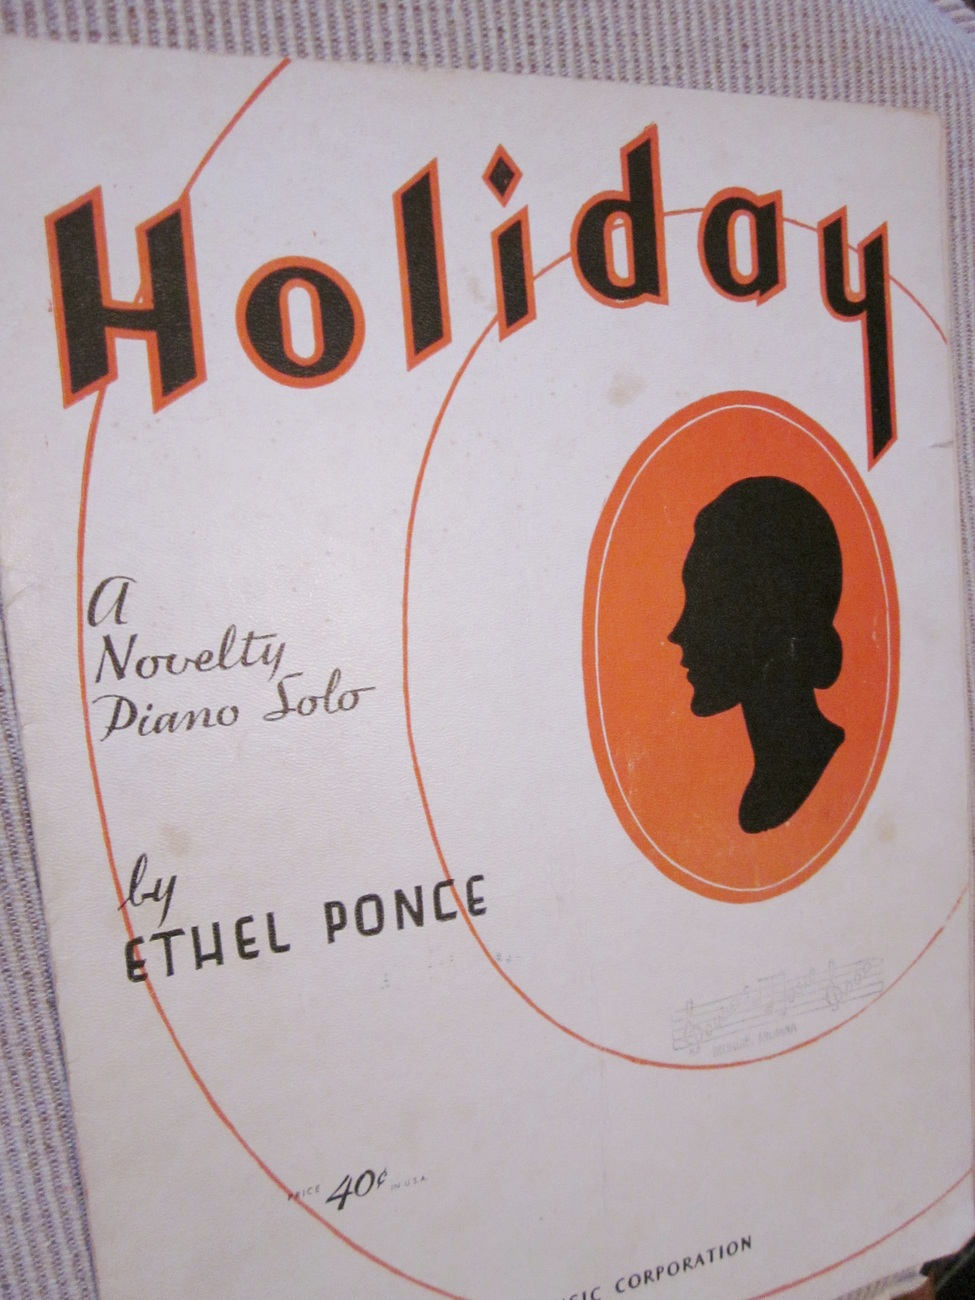 Vintage Sheet Music Holiday by Ethel Ponce - Novelty Piano Solo 1934